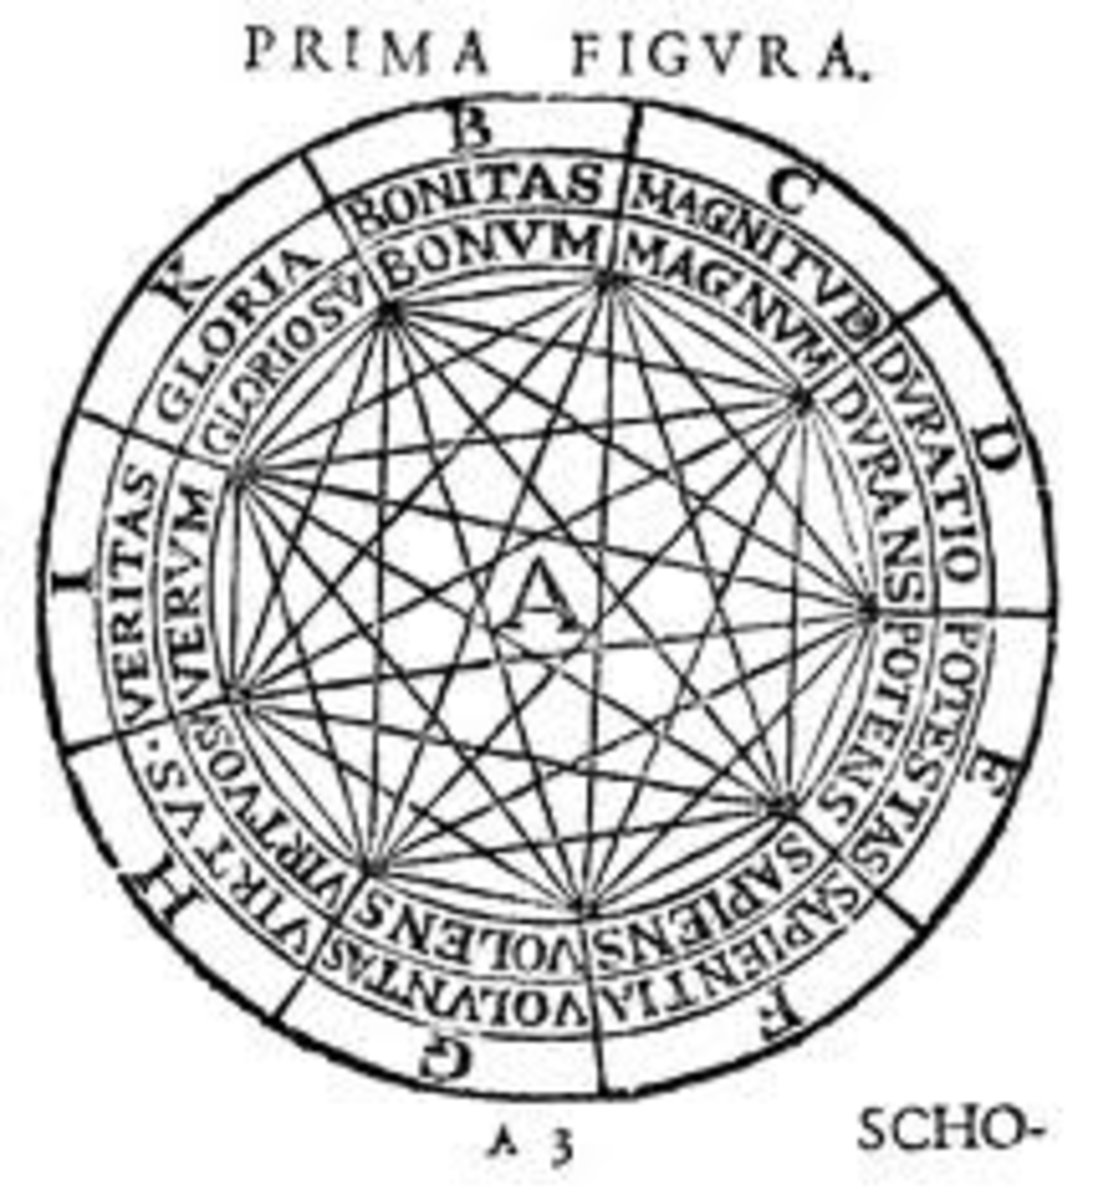 Ramon Llull drew this diagram over 700 years ago showing 81 connecting lines in an Enneagram-like figure.